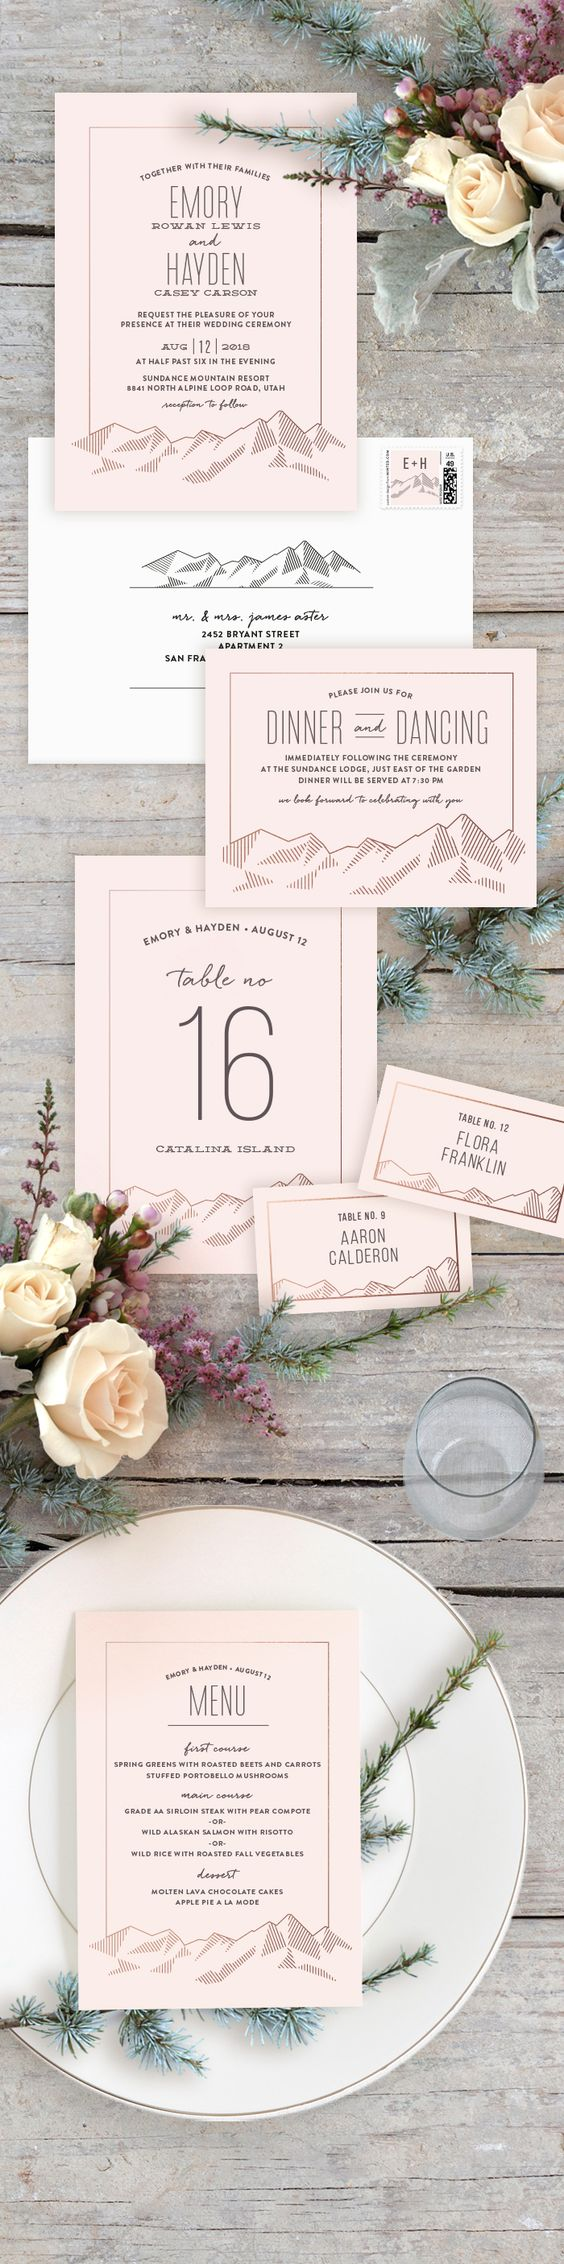 The Little Things Mean the Most: Wedding Invitations general  Wedding, Trends, Tips, Miami Wedding, invitations, ideas, bridal, #weddingsalon  db8863f0535122f7933d1fdc912ba1cc  The Little Things Mean the Most: Wedding Invitations The Little Things Mean the Most: Wedding Invitations